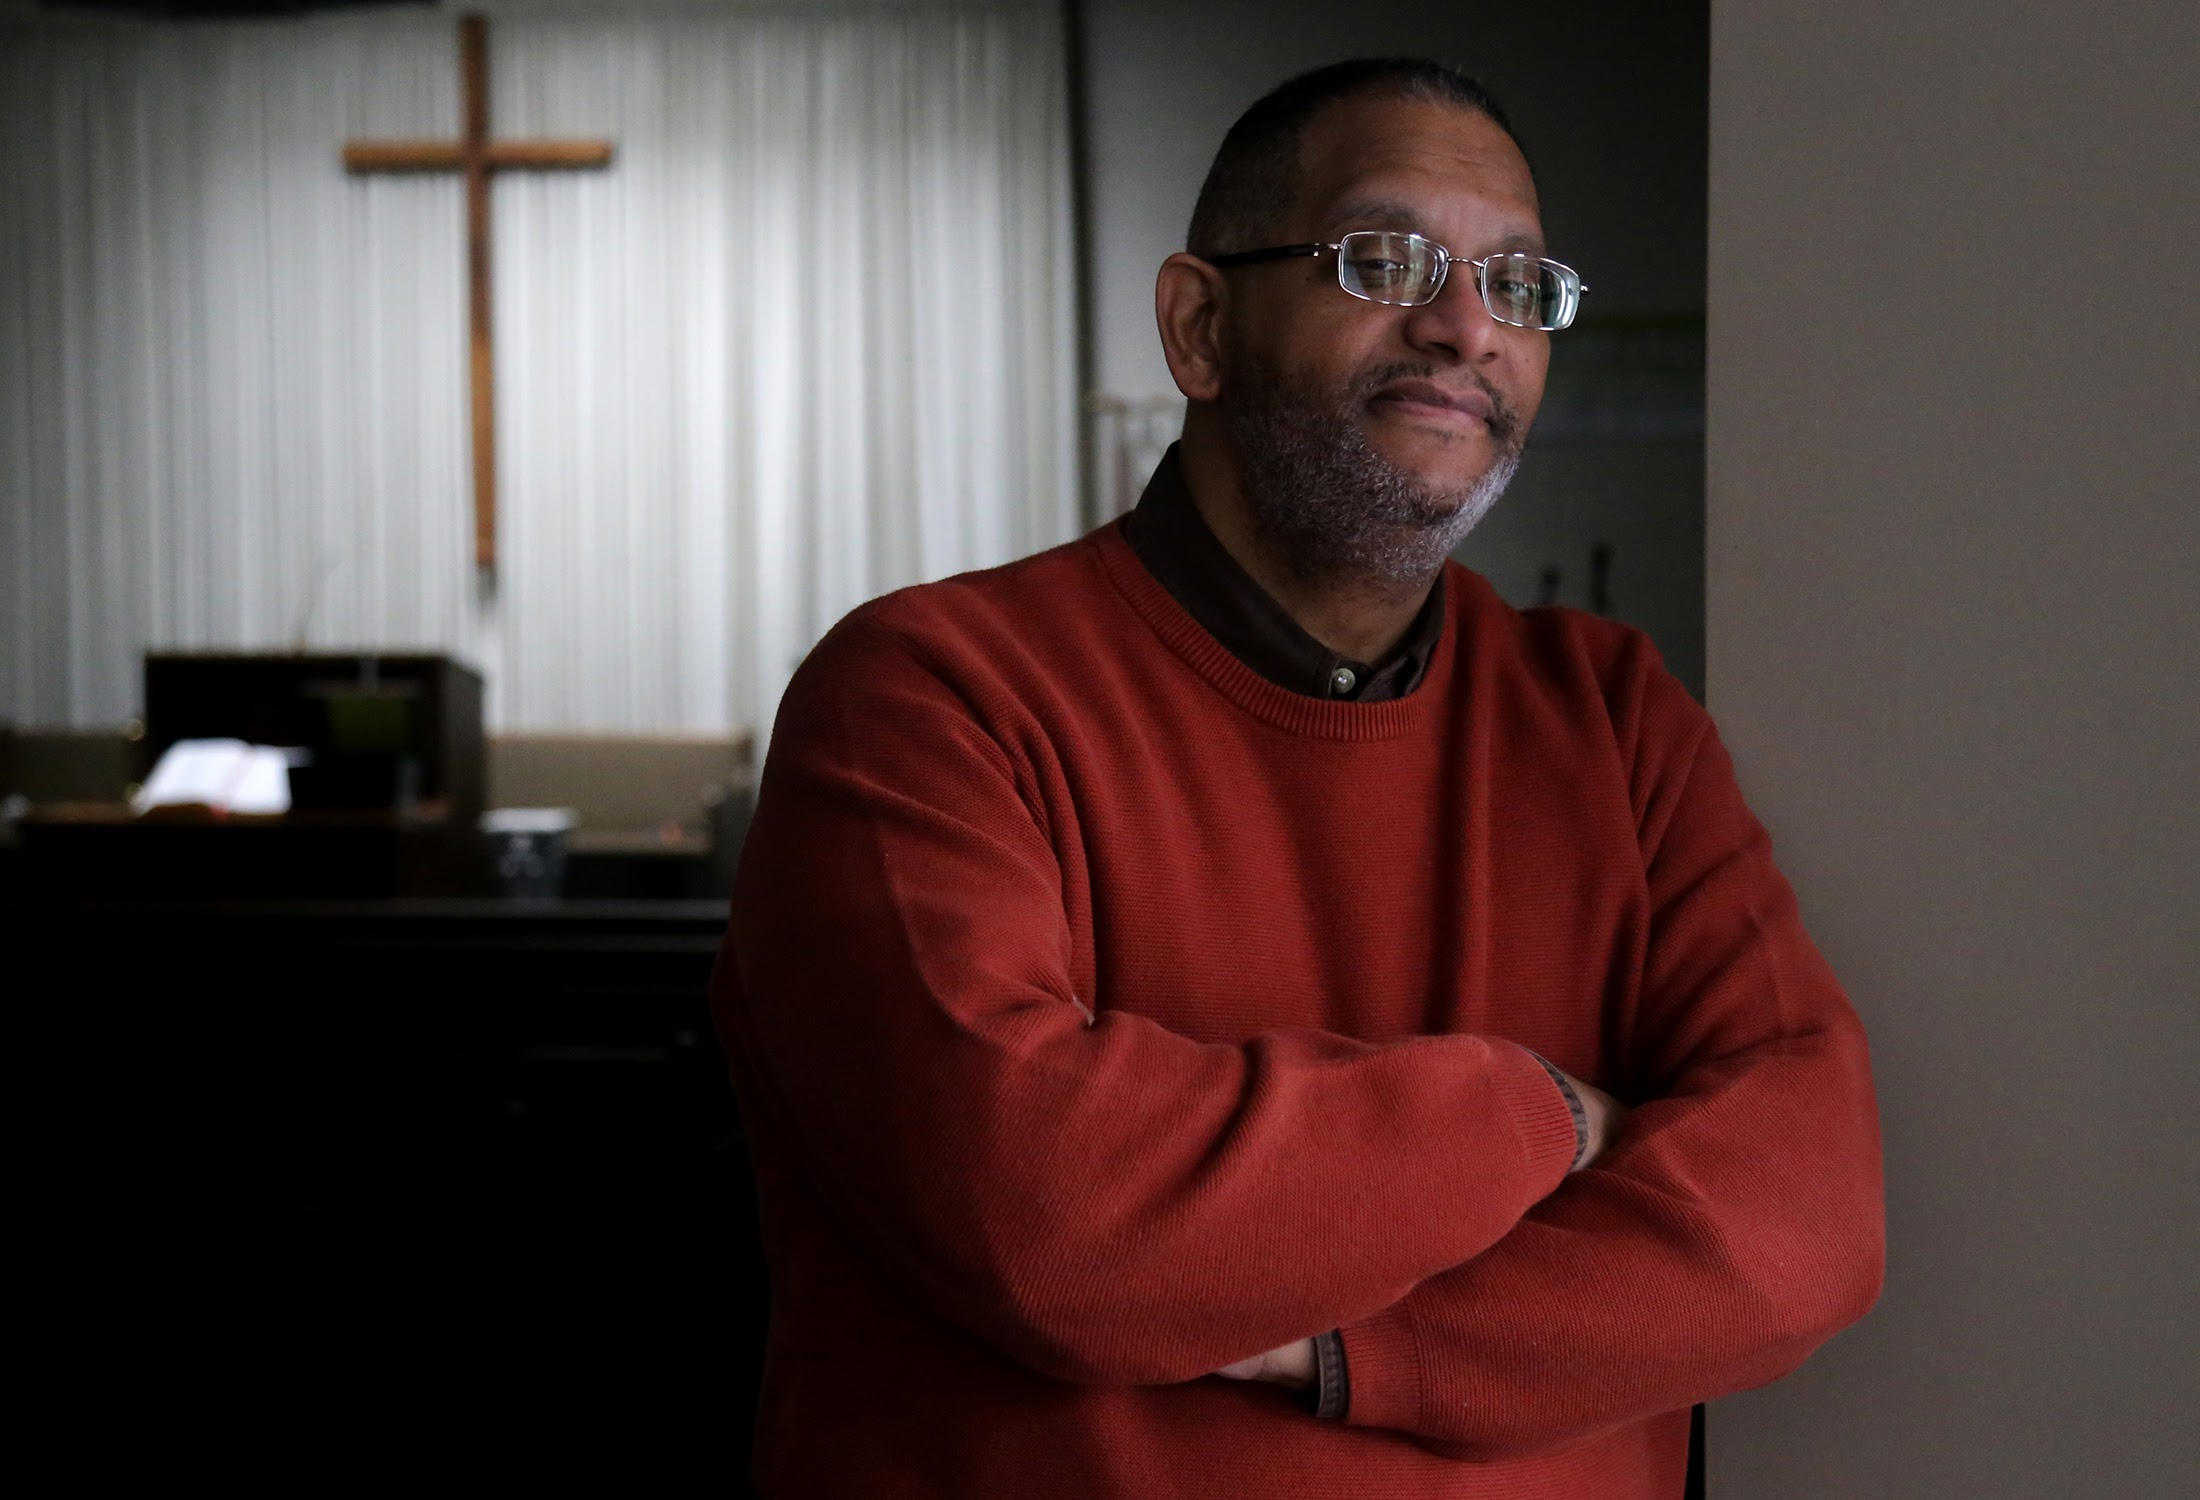 pastor in red sweater standing in church with cross behind him